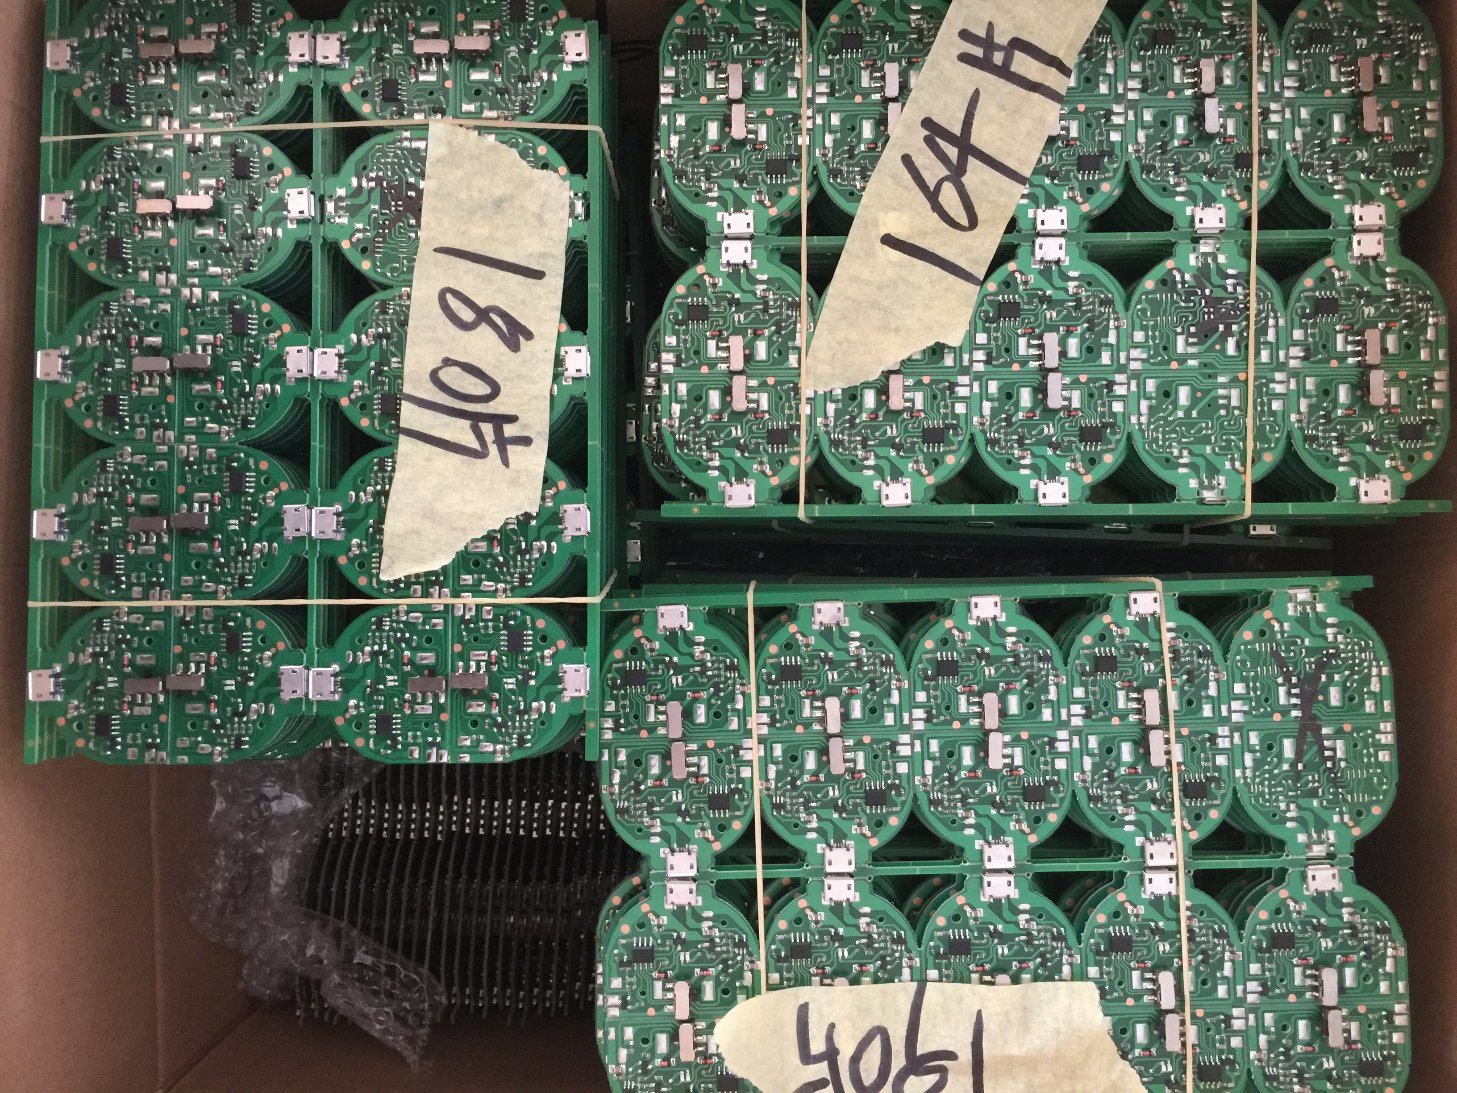 China High Quality Printed Circuit Board Pcb Manufacturer Low Cost Fabrication Pcba Smt Design Manufacturing Developing